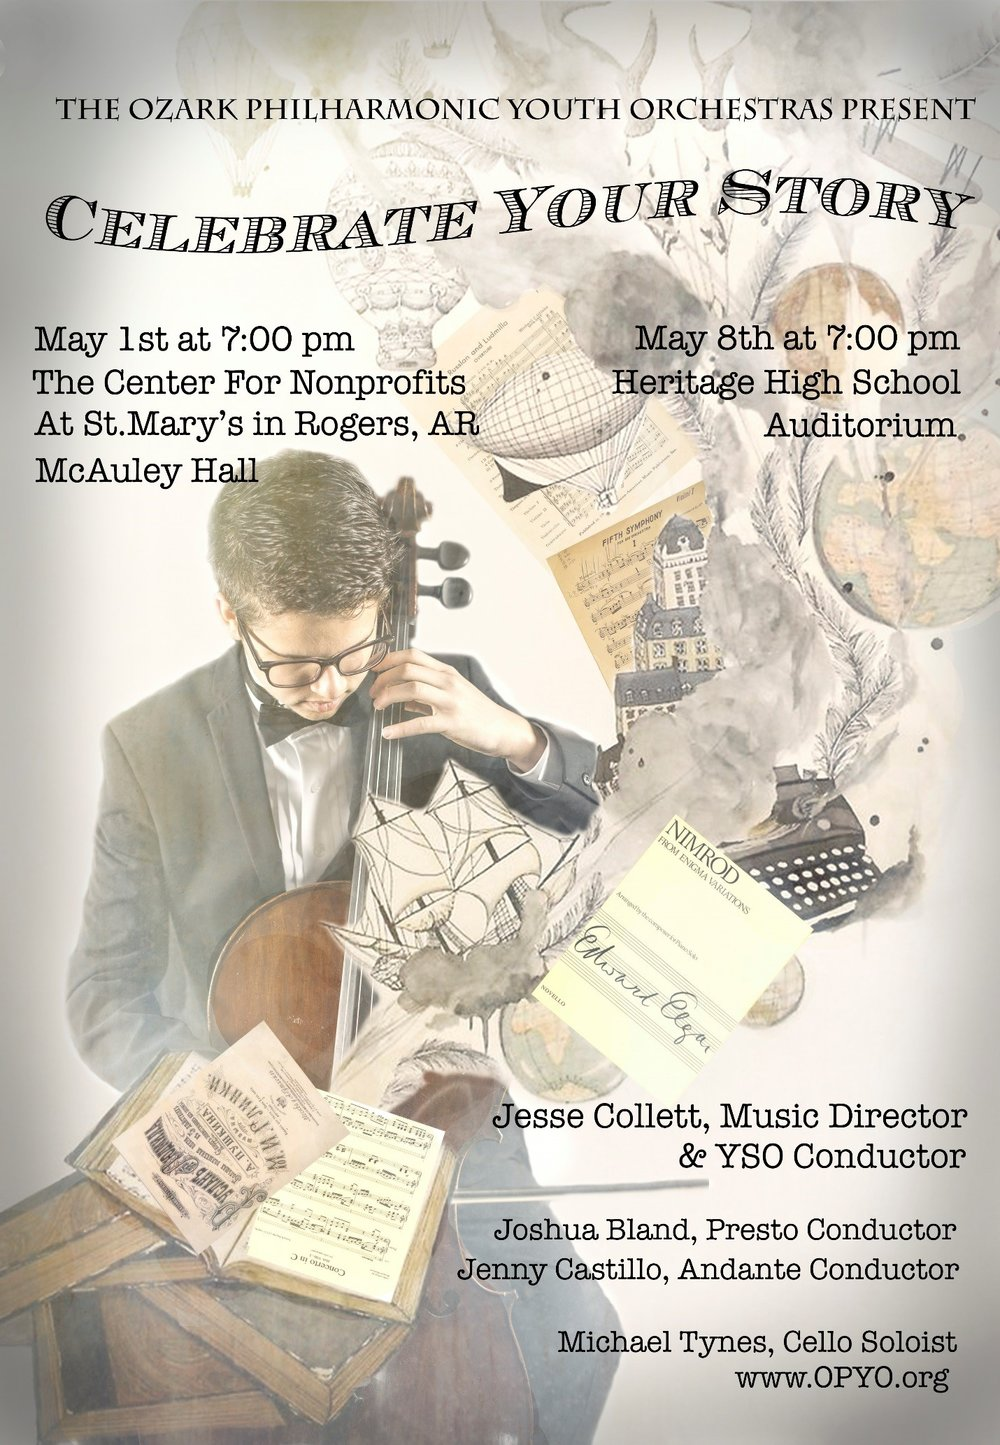 Ozark Philharmonic Youth Orchestra to Perform Free Concert at McAuley Hall